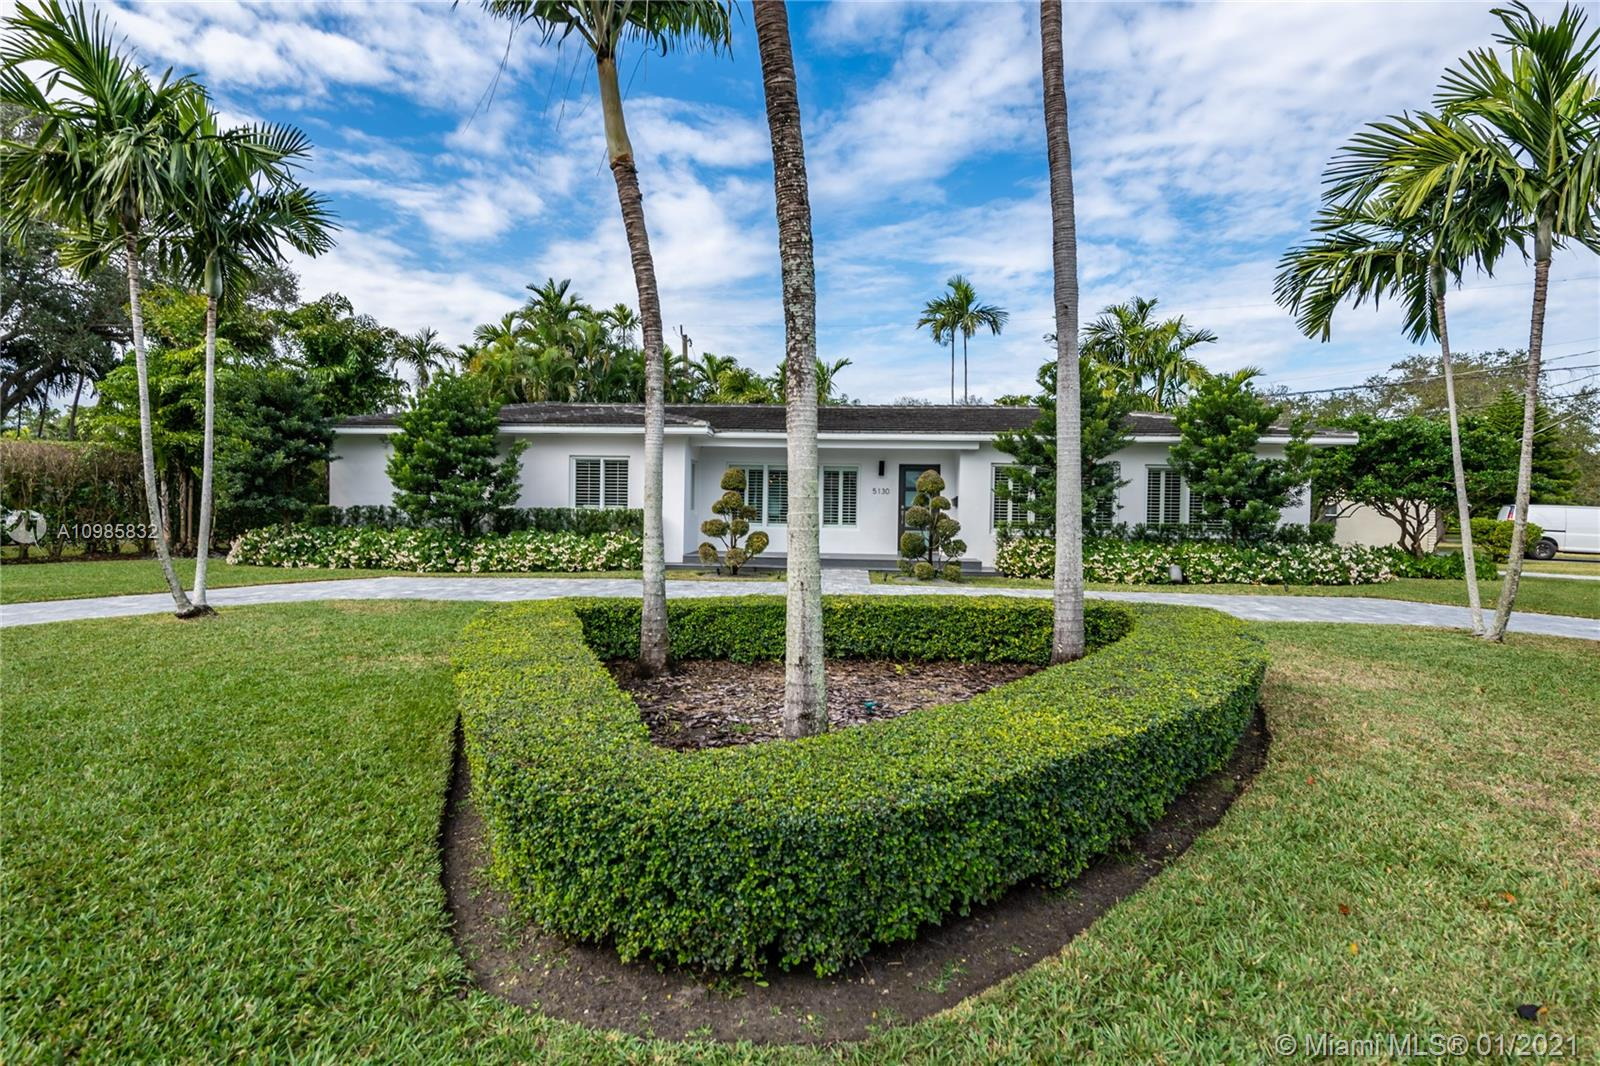 5130 Donatello St, Coral Gables, Florida 33146, 3 Bedrooms Bedrooms, ,2 BathroomsBathrooms,Residential,For Sale,5130 Donatello St,A10985832